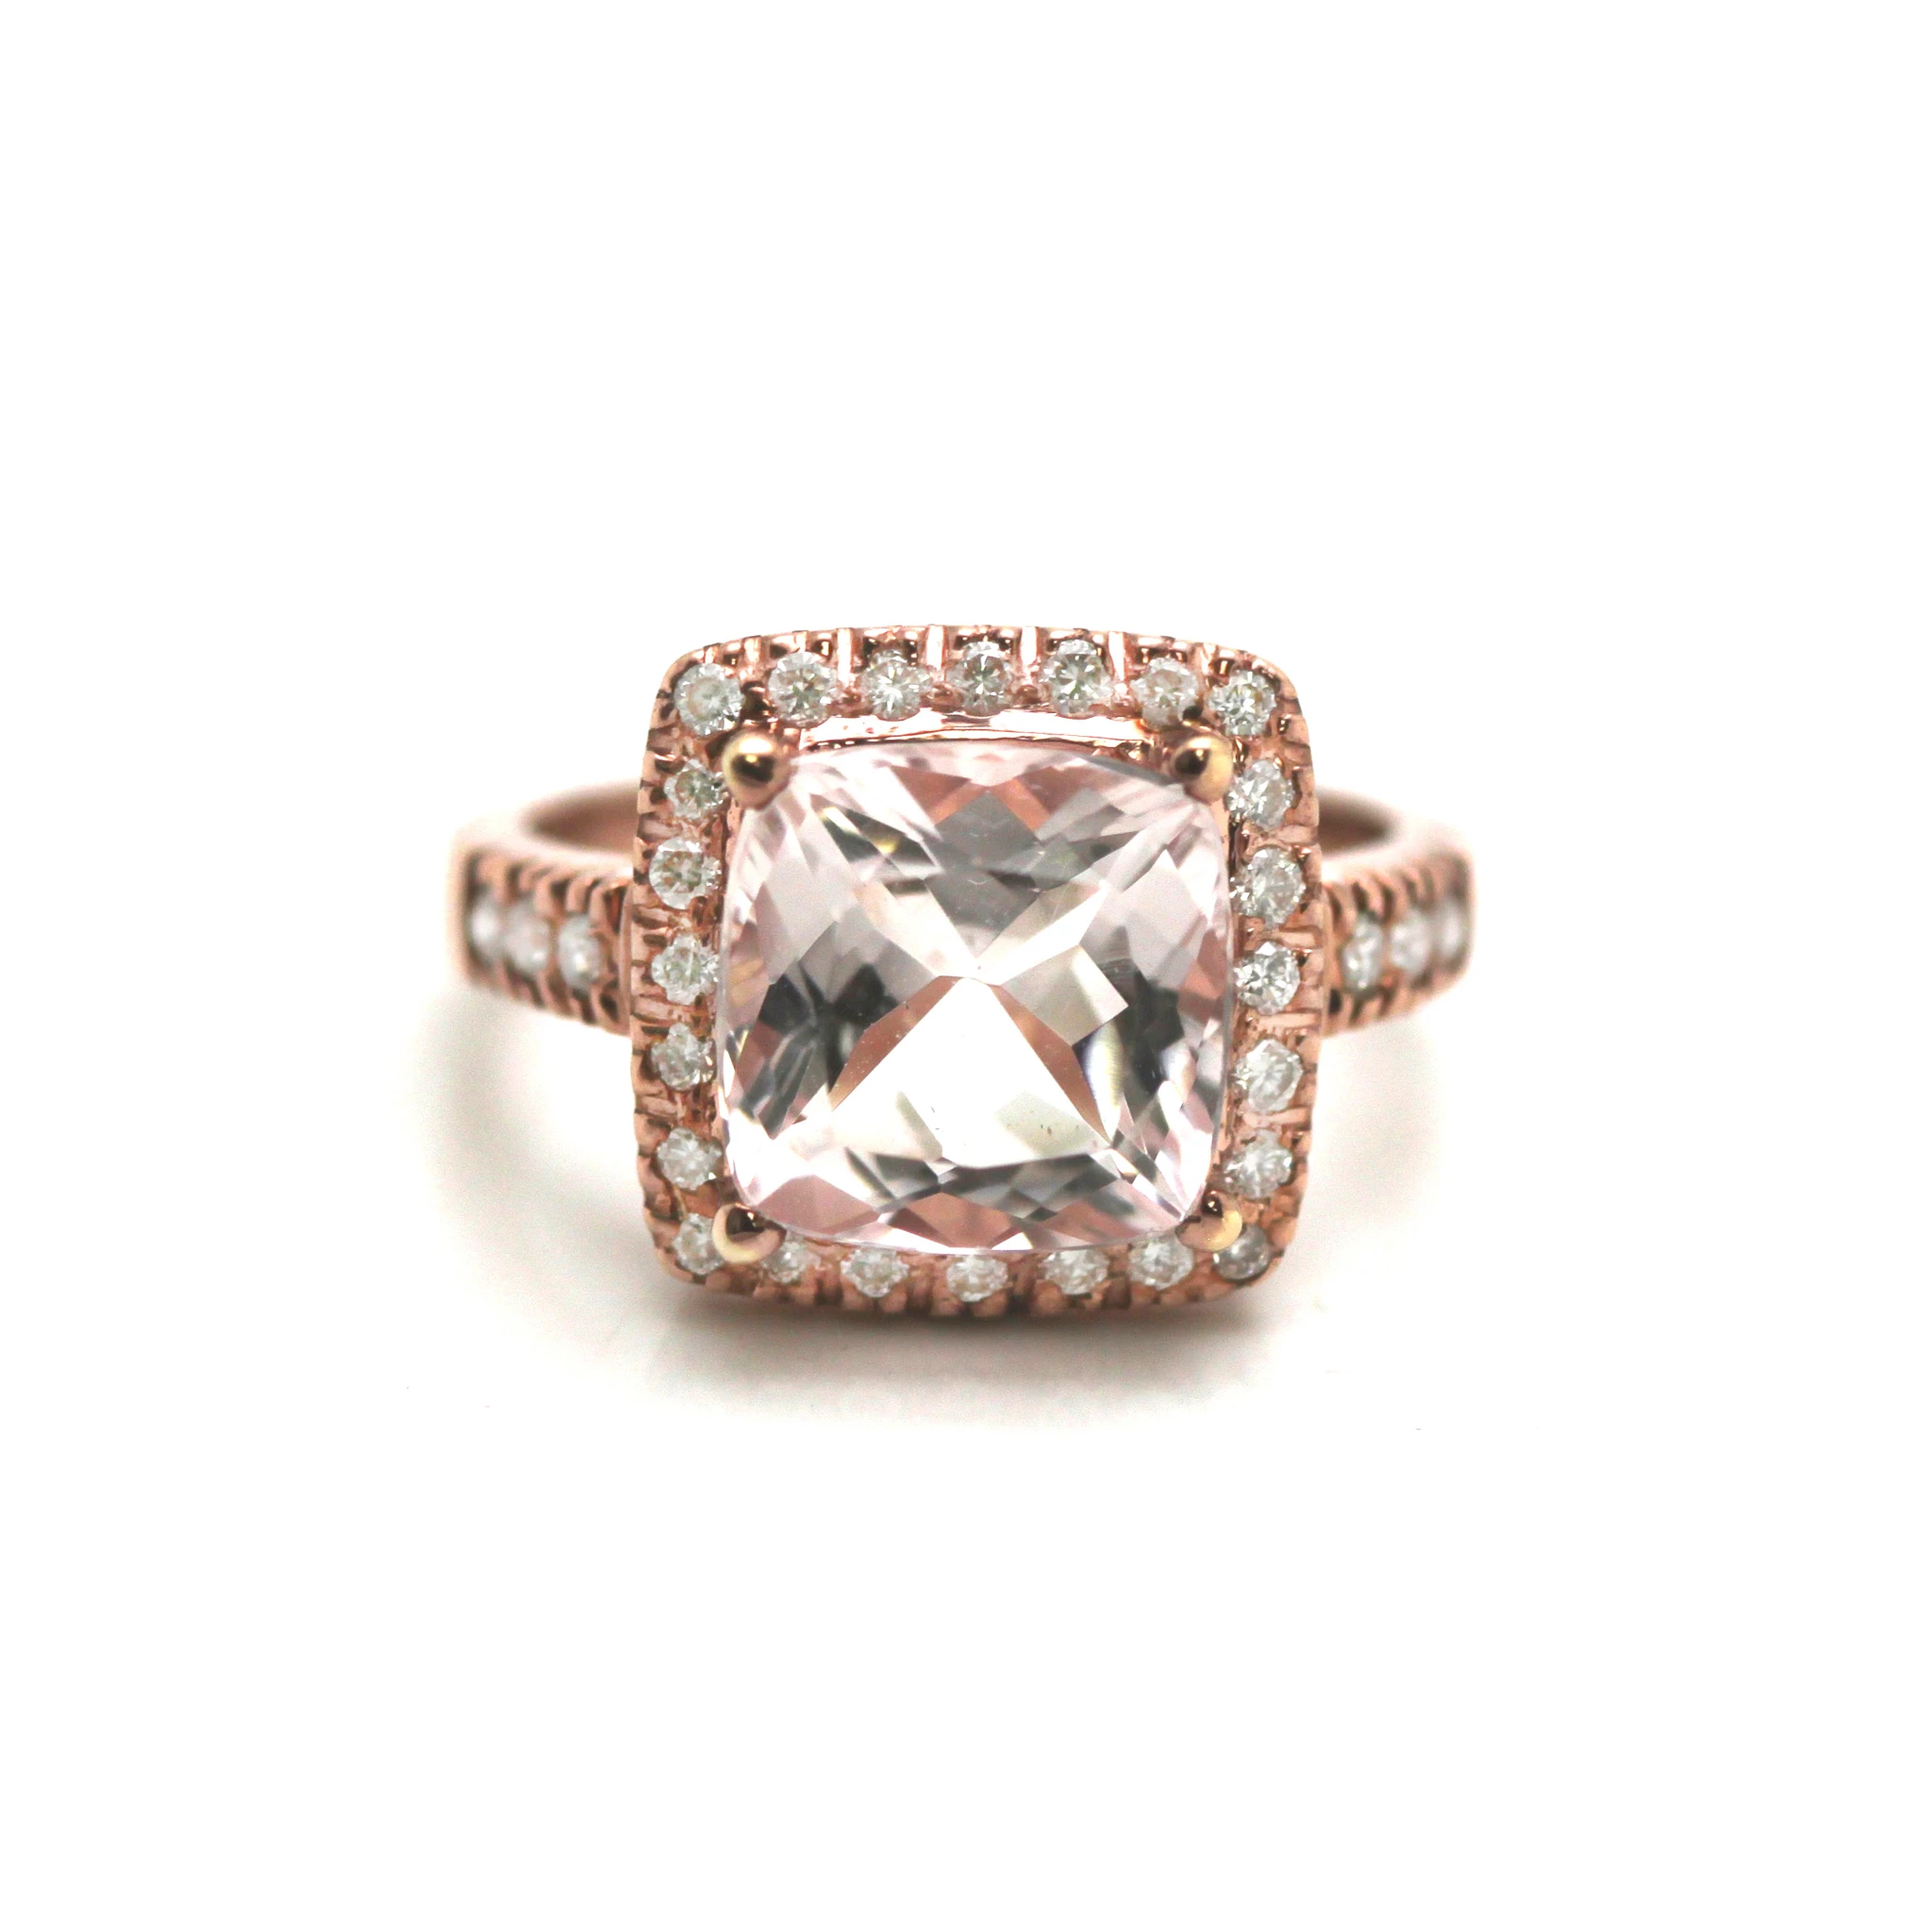 18K Rose Gold, Morganite, and Diamond Square Cushion Ring